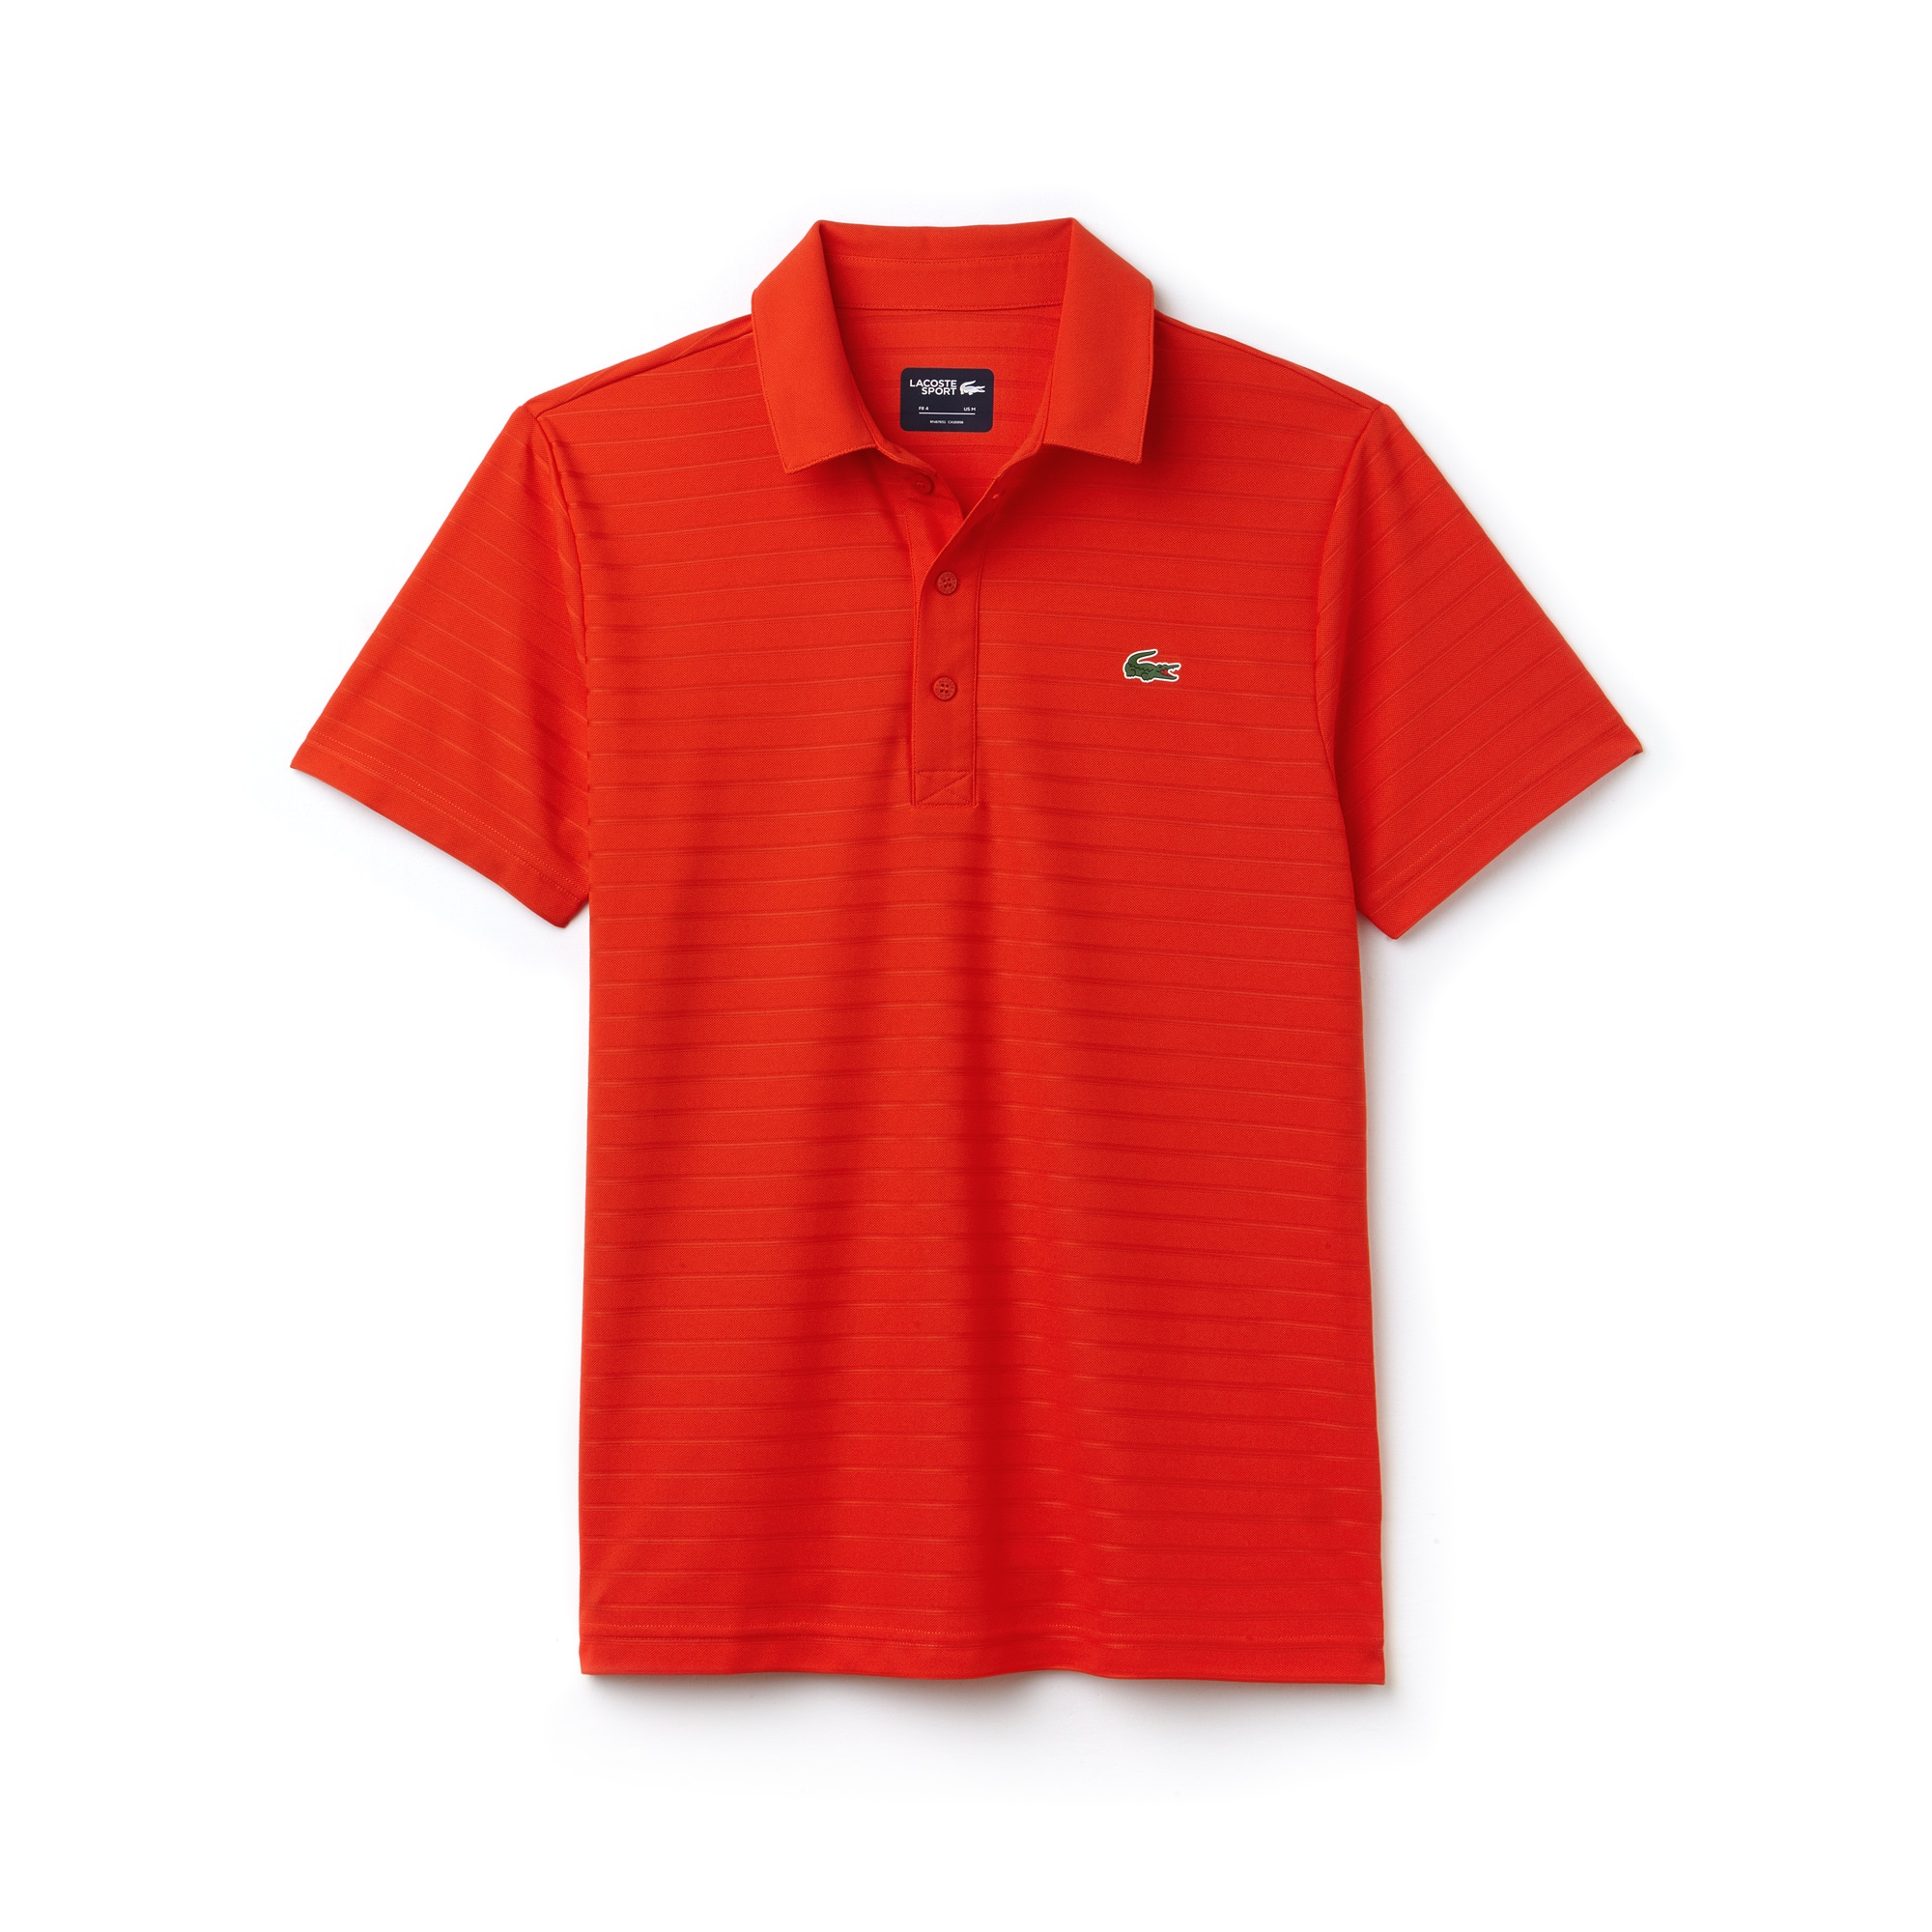 Men's Lacoste SPORT Golf Striped Tech Jacquard Jersey Polo Shirt